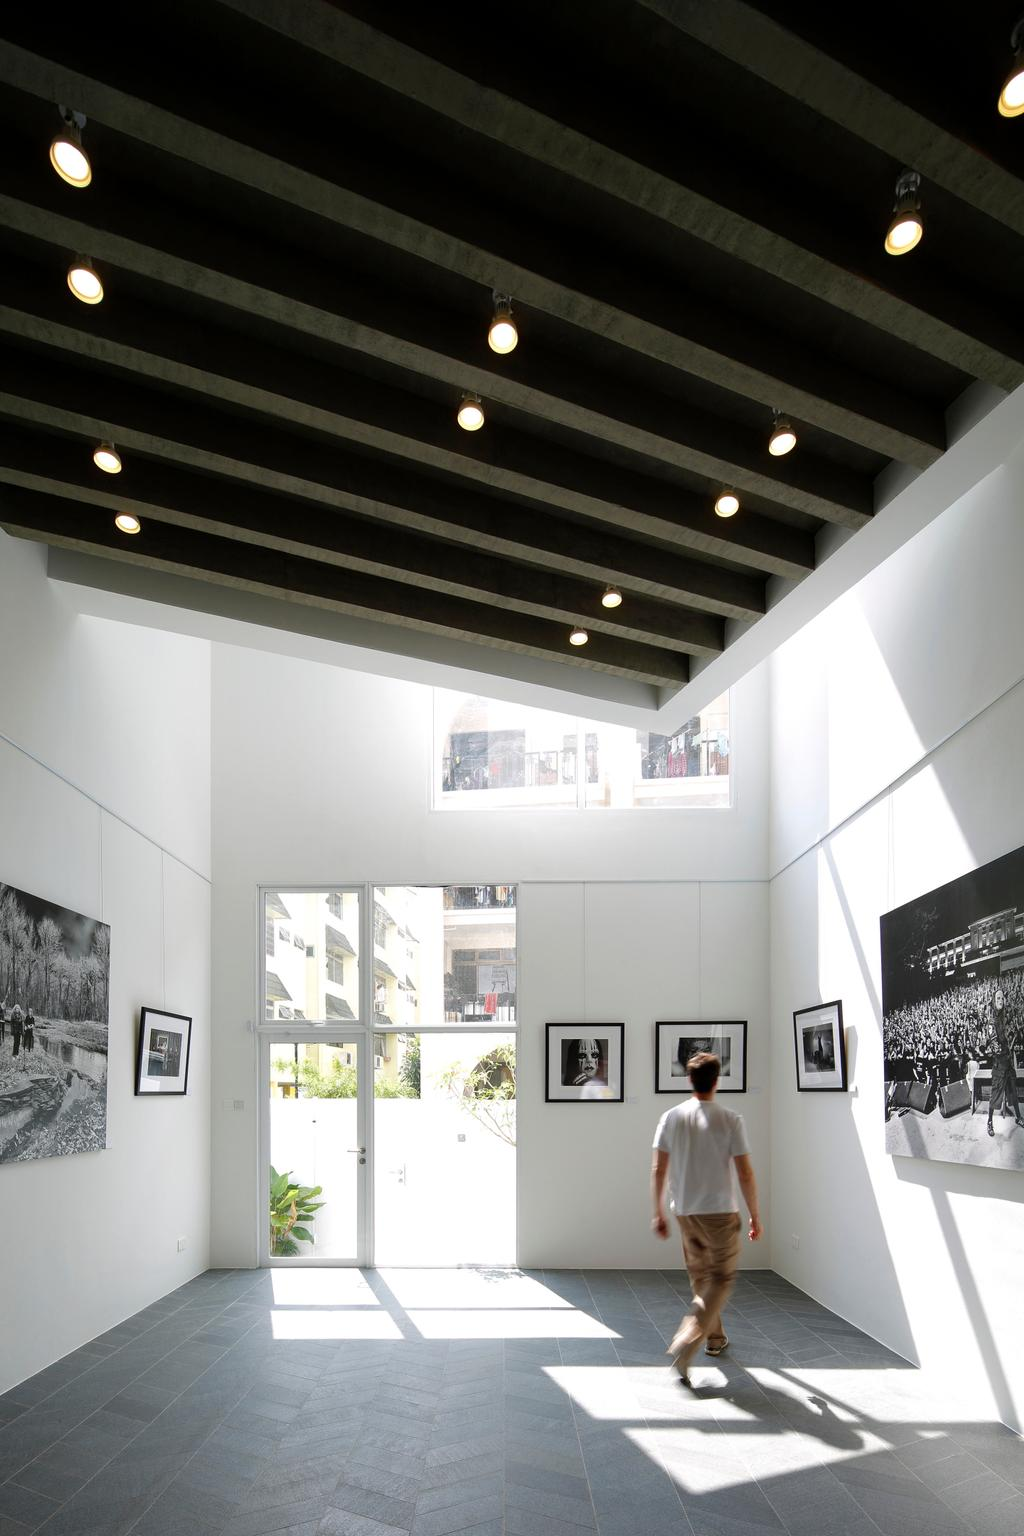 Gallery House, Commercial, Architect, Lekker Architects, Modern, High Ceiling, Ceiling Lights, Wall Portrait, White Ceiling, Door, Sliding Door, Audience, Crowd, Human, Person